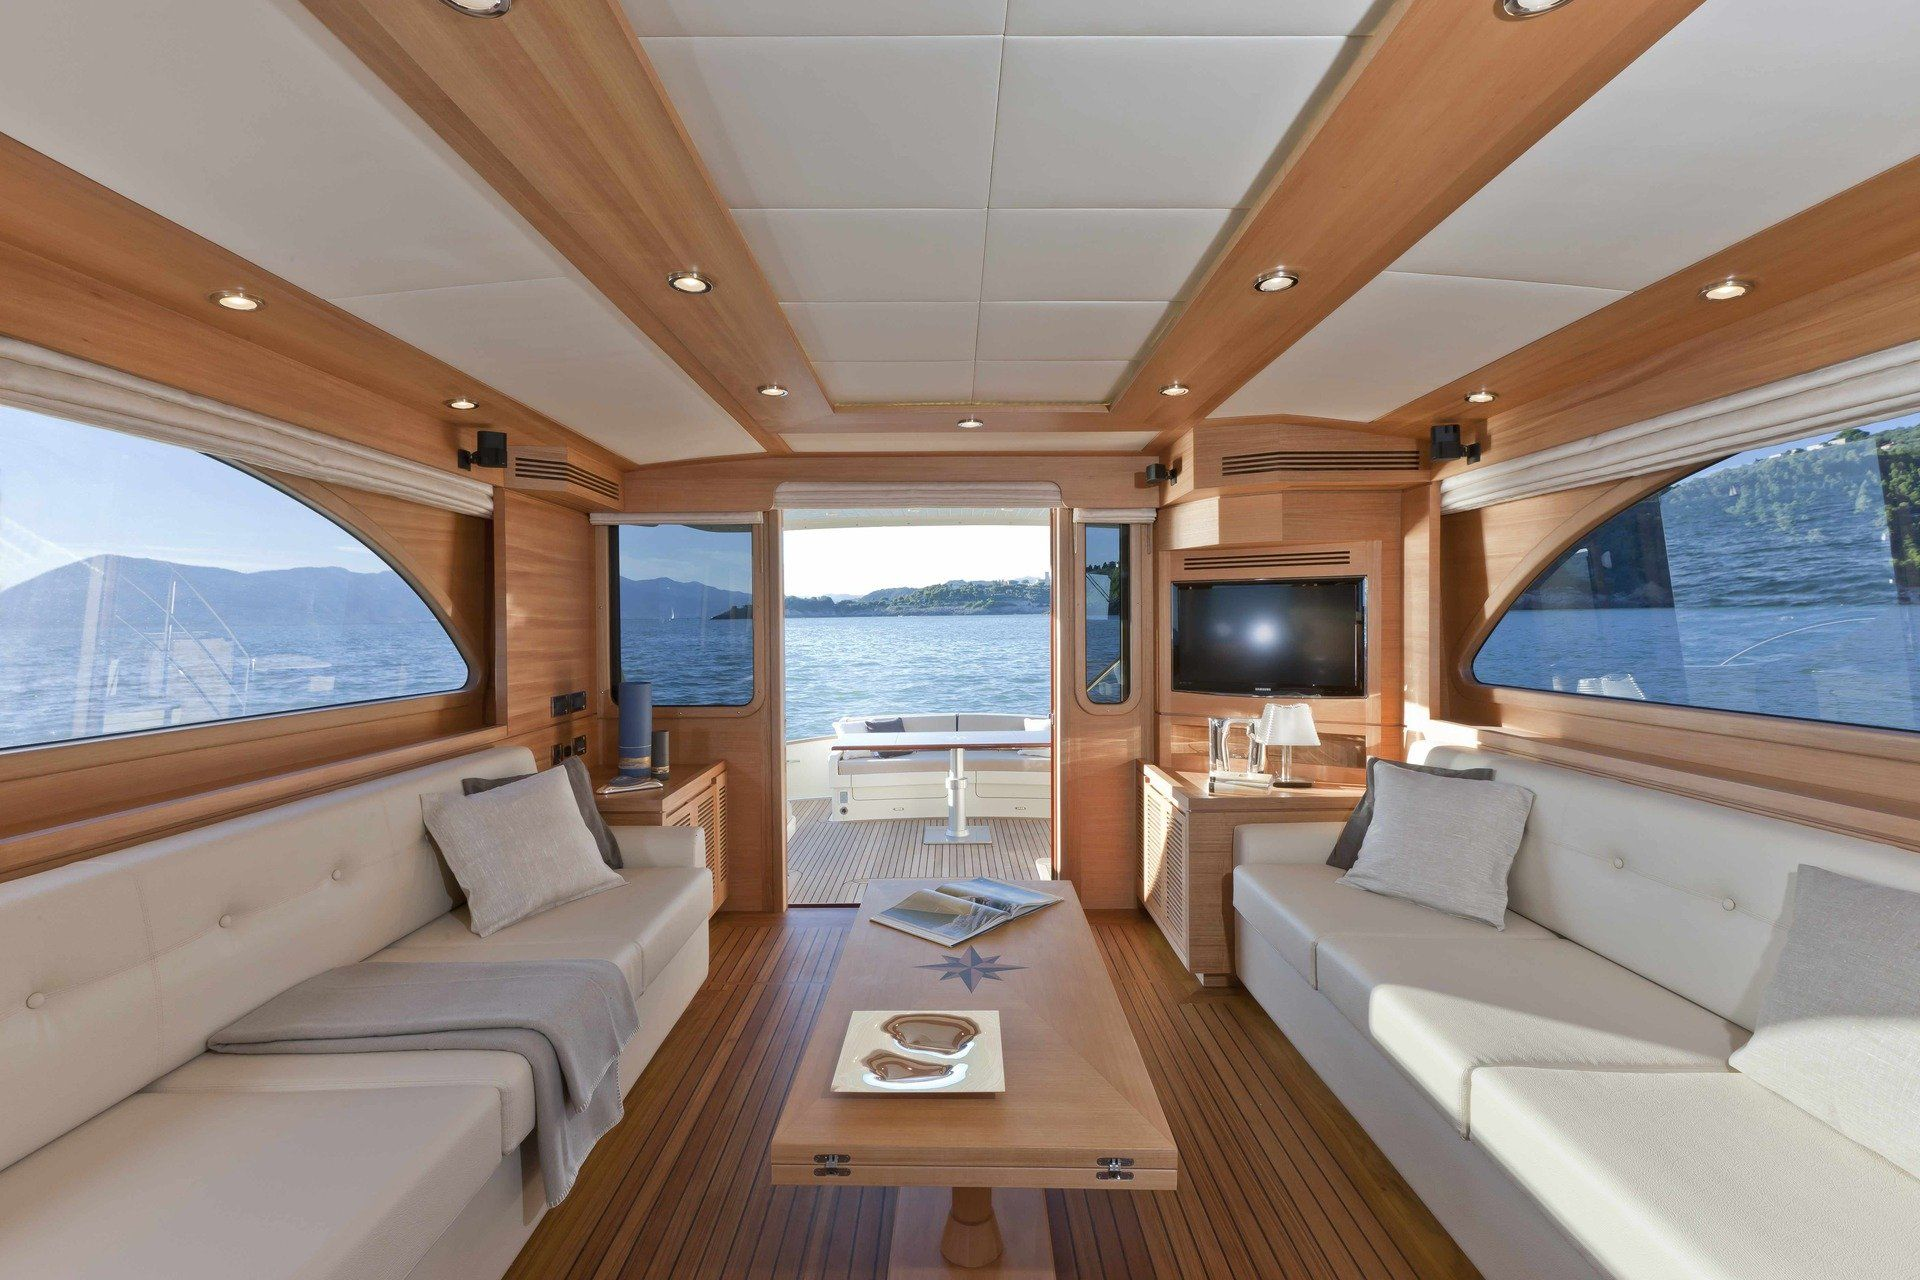 Explore Wooden Tables Futuristic Interior And More Image Result For Yacht Exterior Upholstery